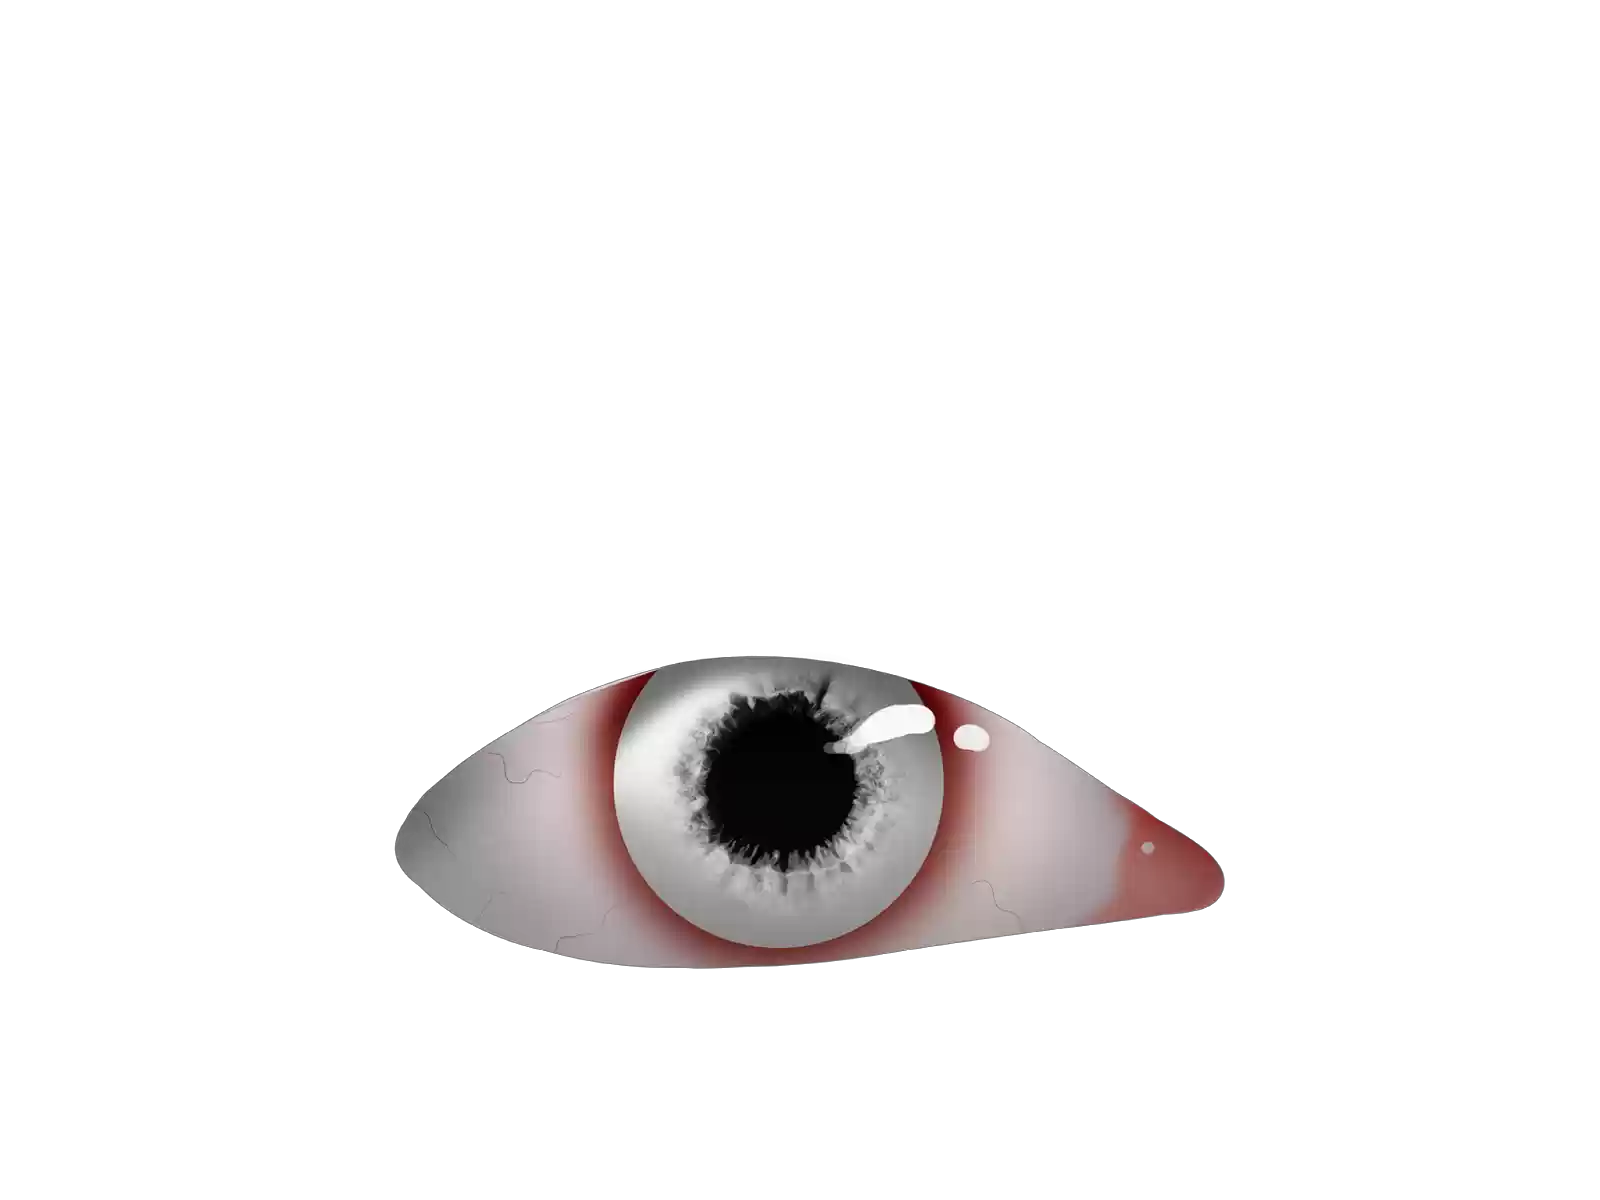 Scary eye png. Mouth image related wallpapers